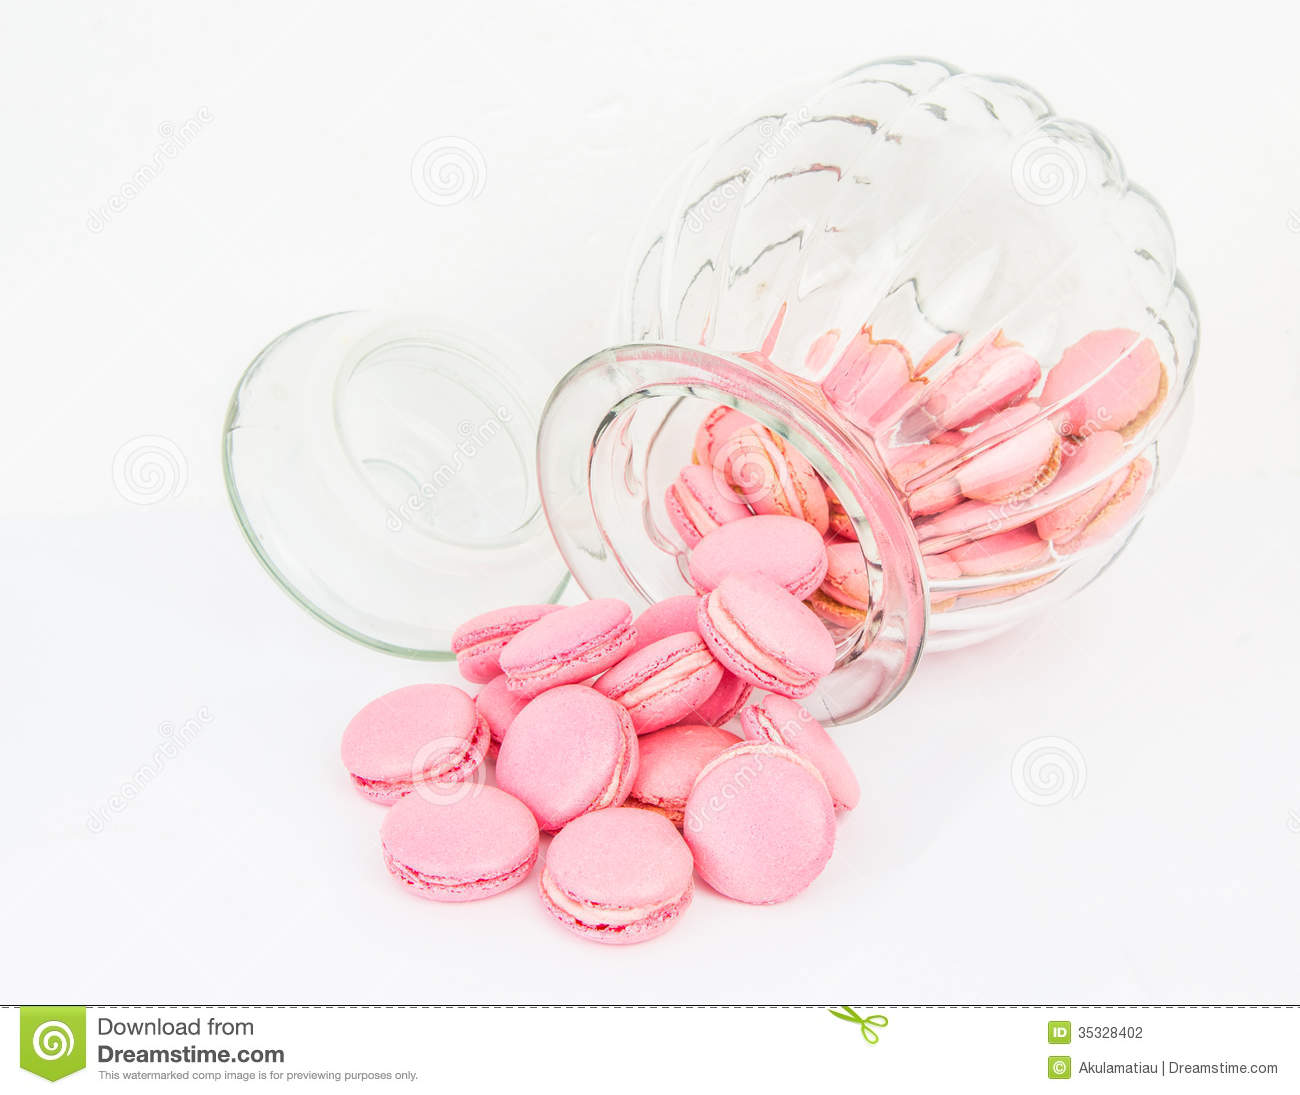 Pink French macaron in a glass jar with vanilla buttercream filling.